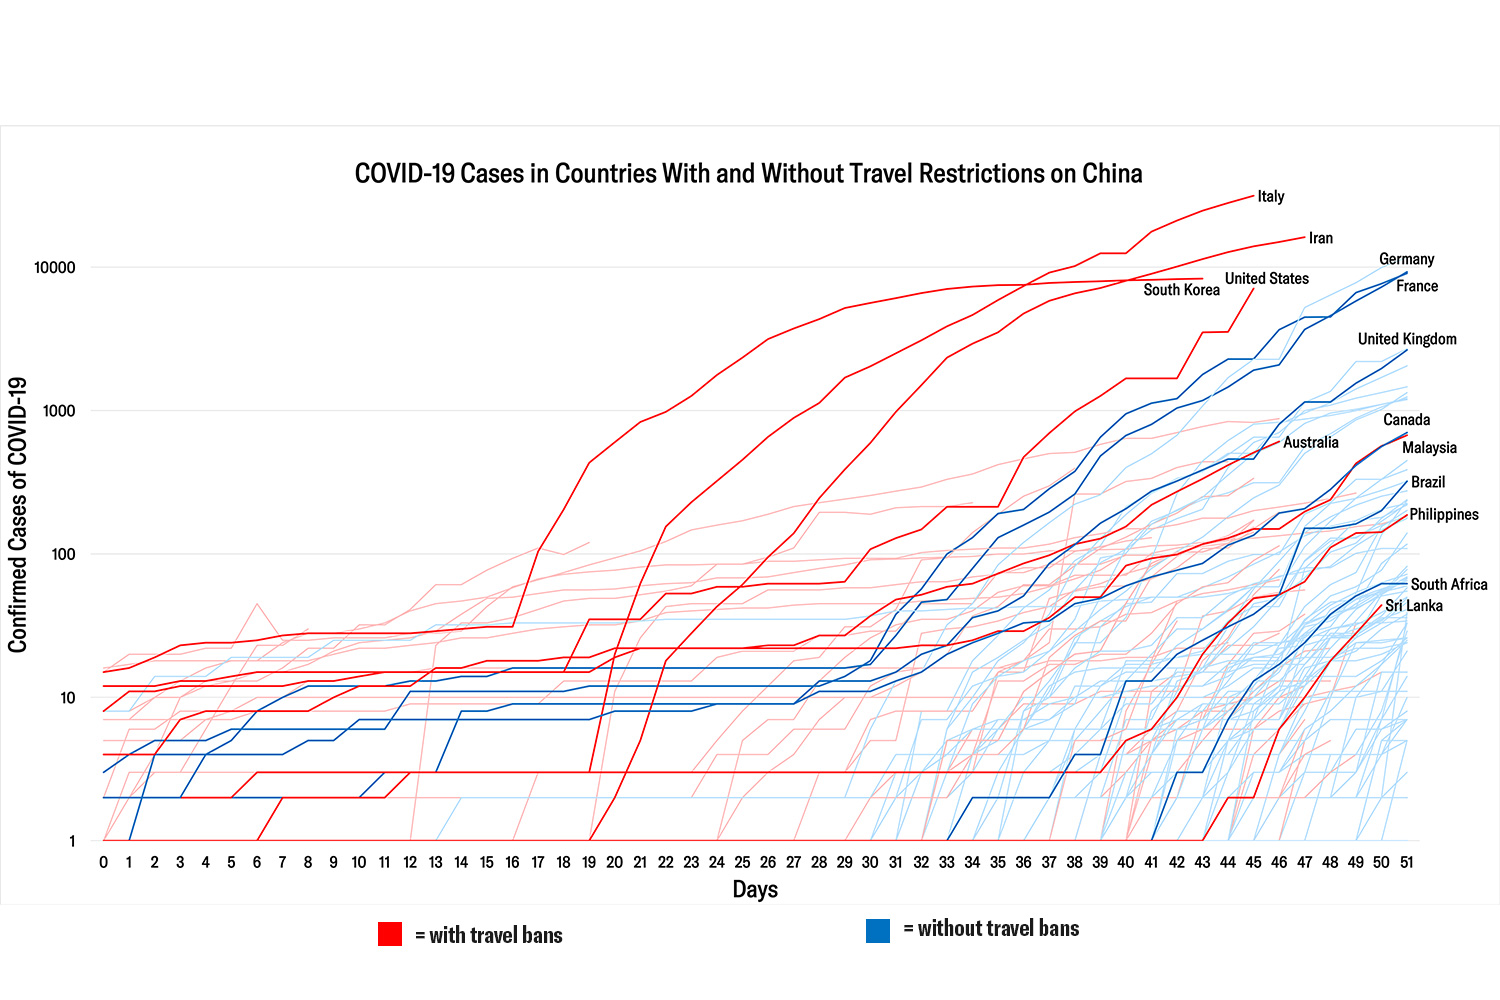 The graph shows cumulative confirmed cases of COVID-19 over time for all countries with confirmed cases as of March 11. The x-axis show days since the first travel restrictions were implemented. For all travel restriction imposing countries, data has been indexed to start from their respective day zero of travel restriction implementation. CFR/Samantha Kiernan